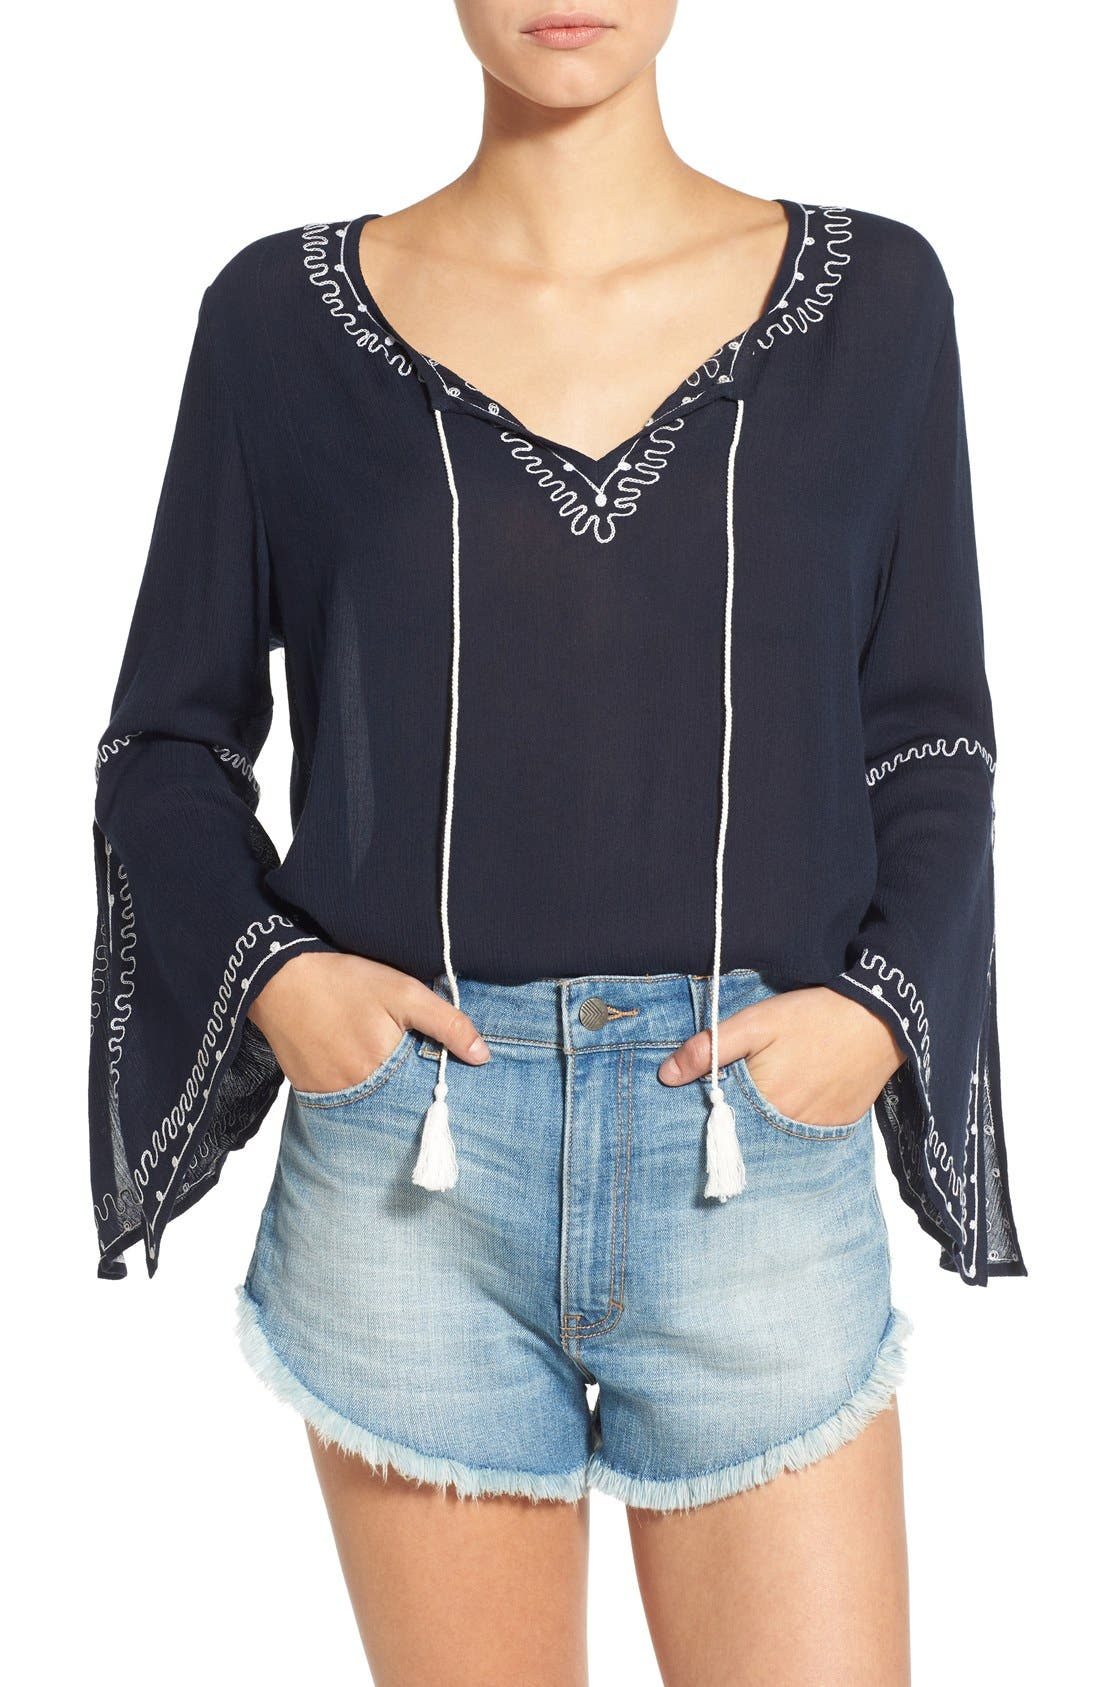 Alternate Image 1 Selected - Band of Gypsies Embroidered Bell Sleeve Blouse